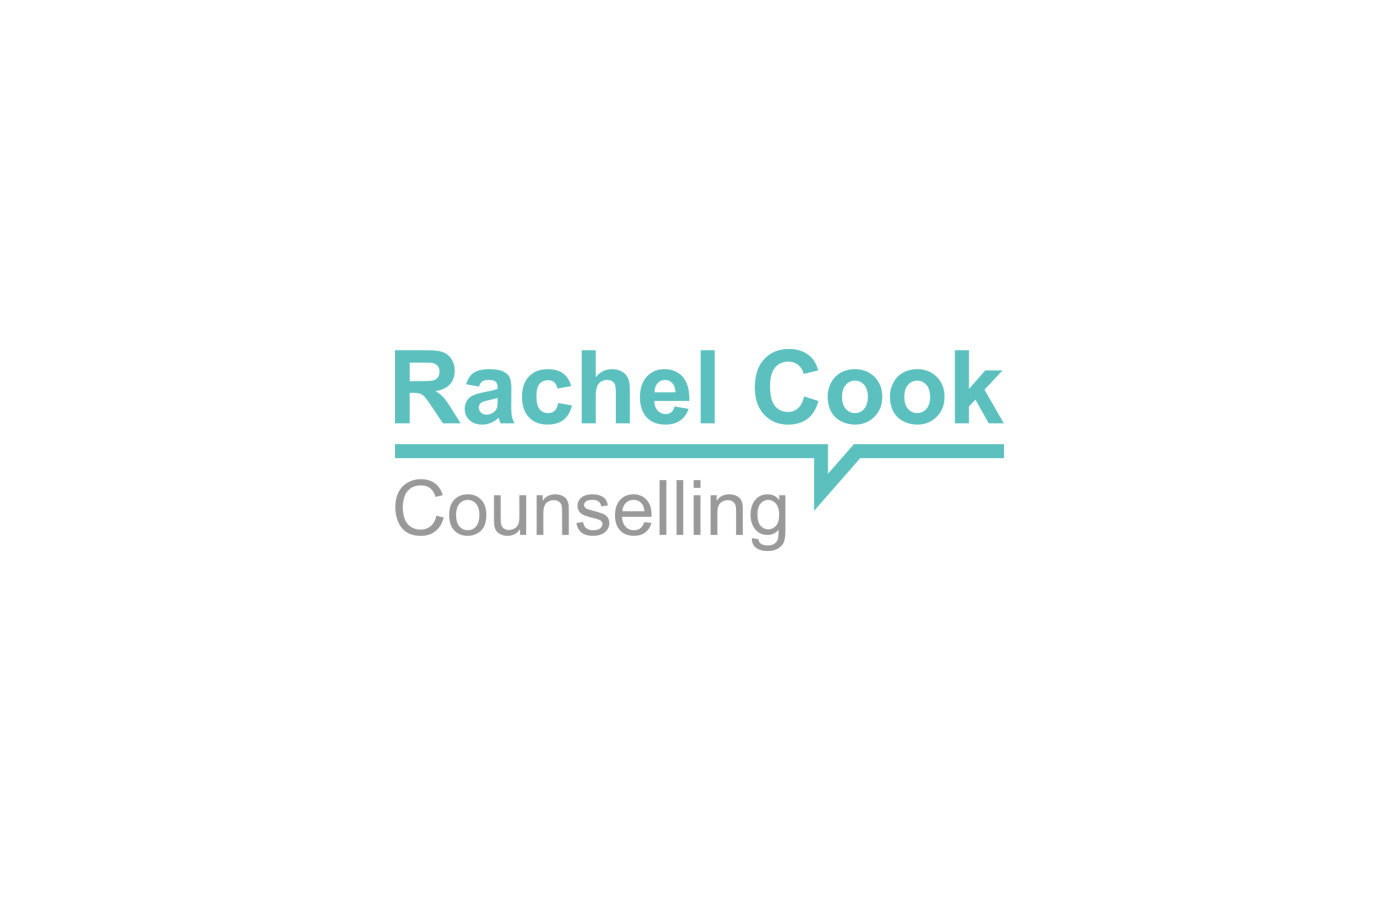 counselling branding